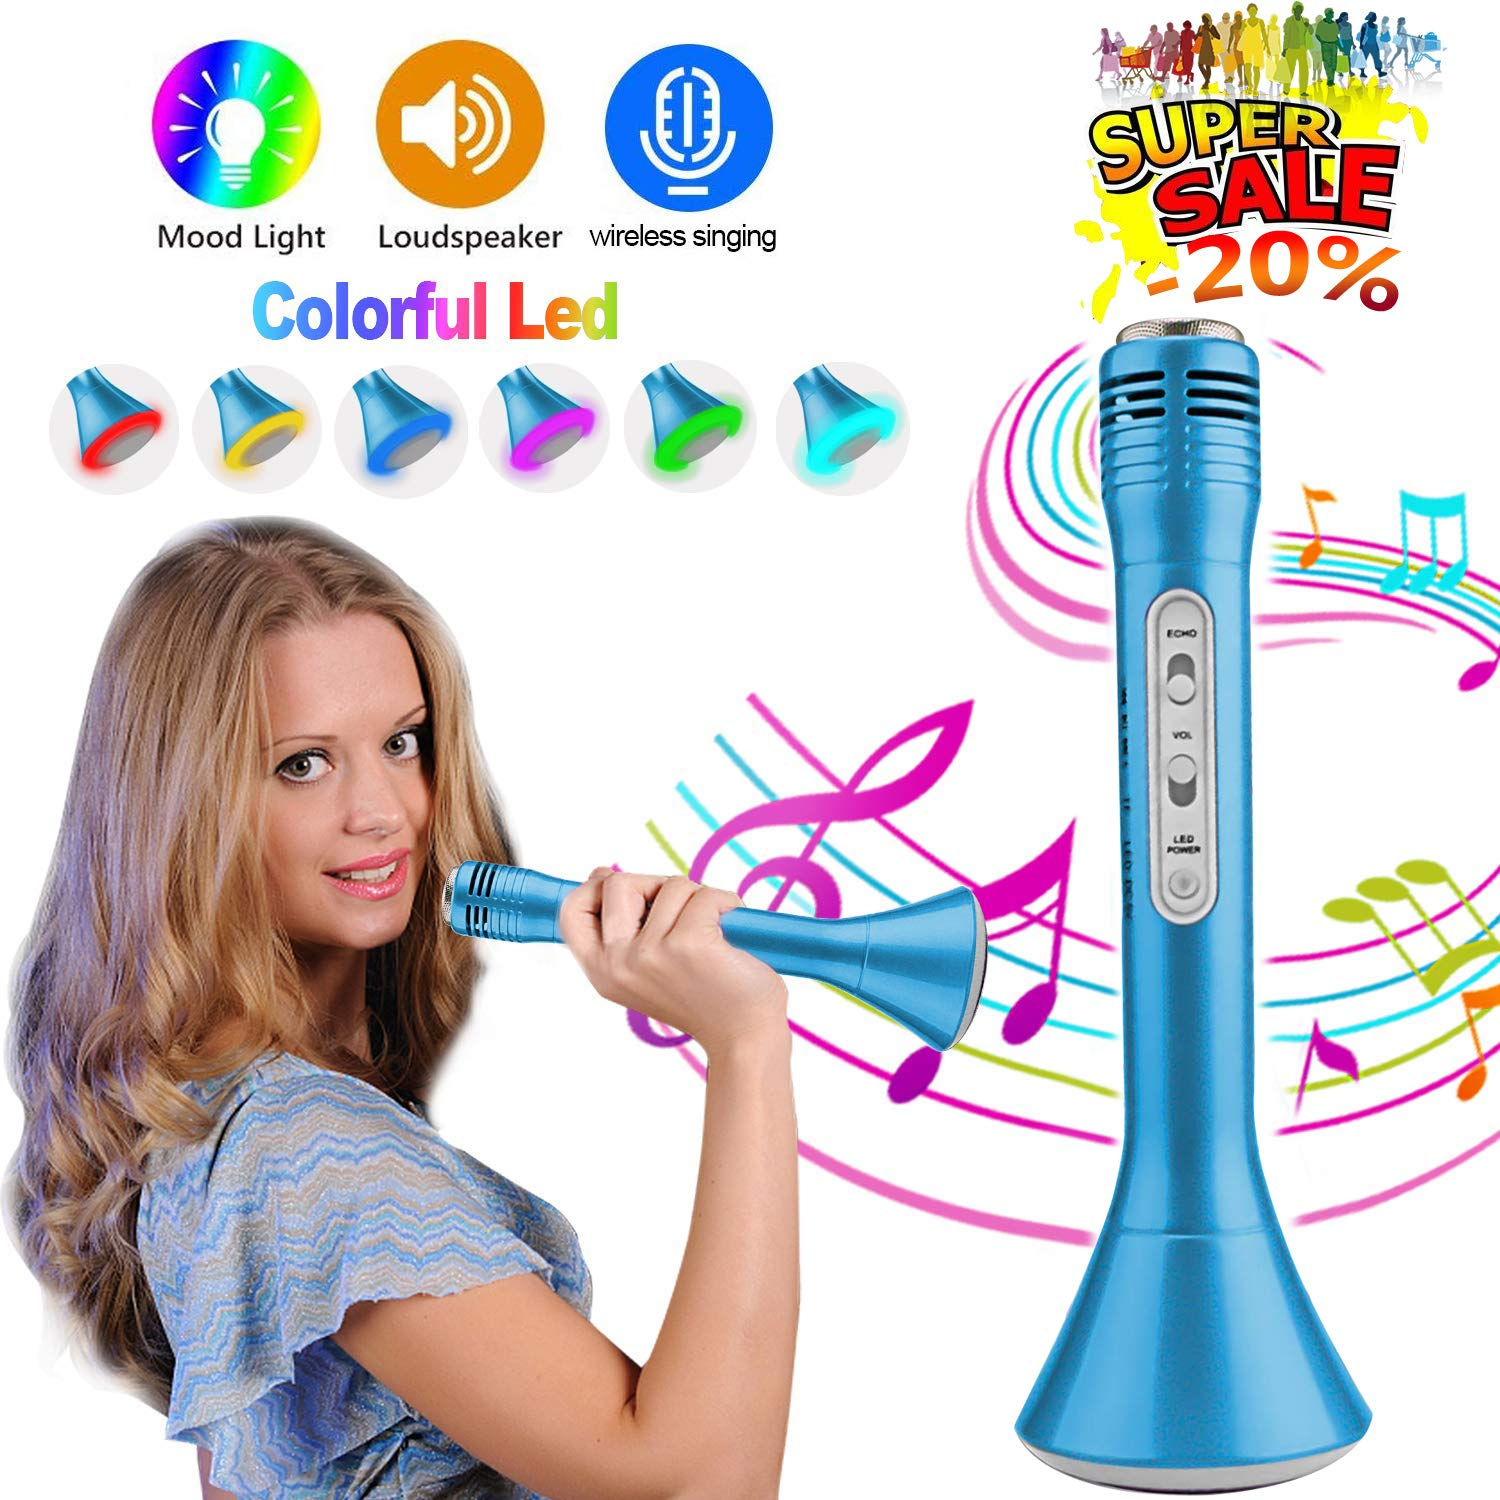 iGeeKid Kids Wireless Karaoke Microphone with Speaker Colorful LED Light for Girls Boys Toddlers Portable Handheld Music Toys for Singing Music Playing Party KTV Support iOS Android [Super Sale]